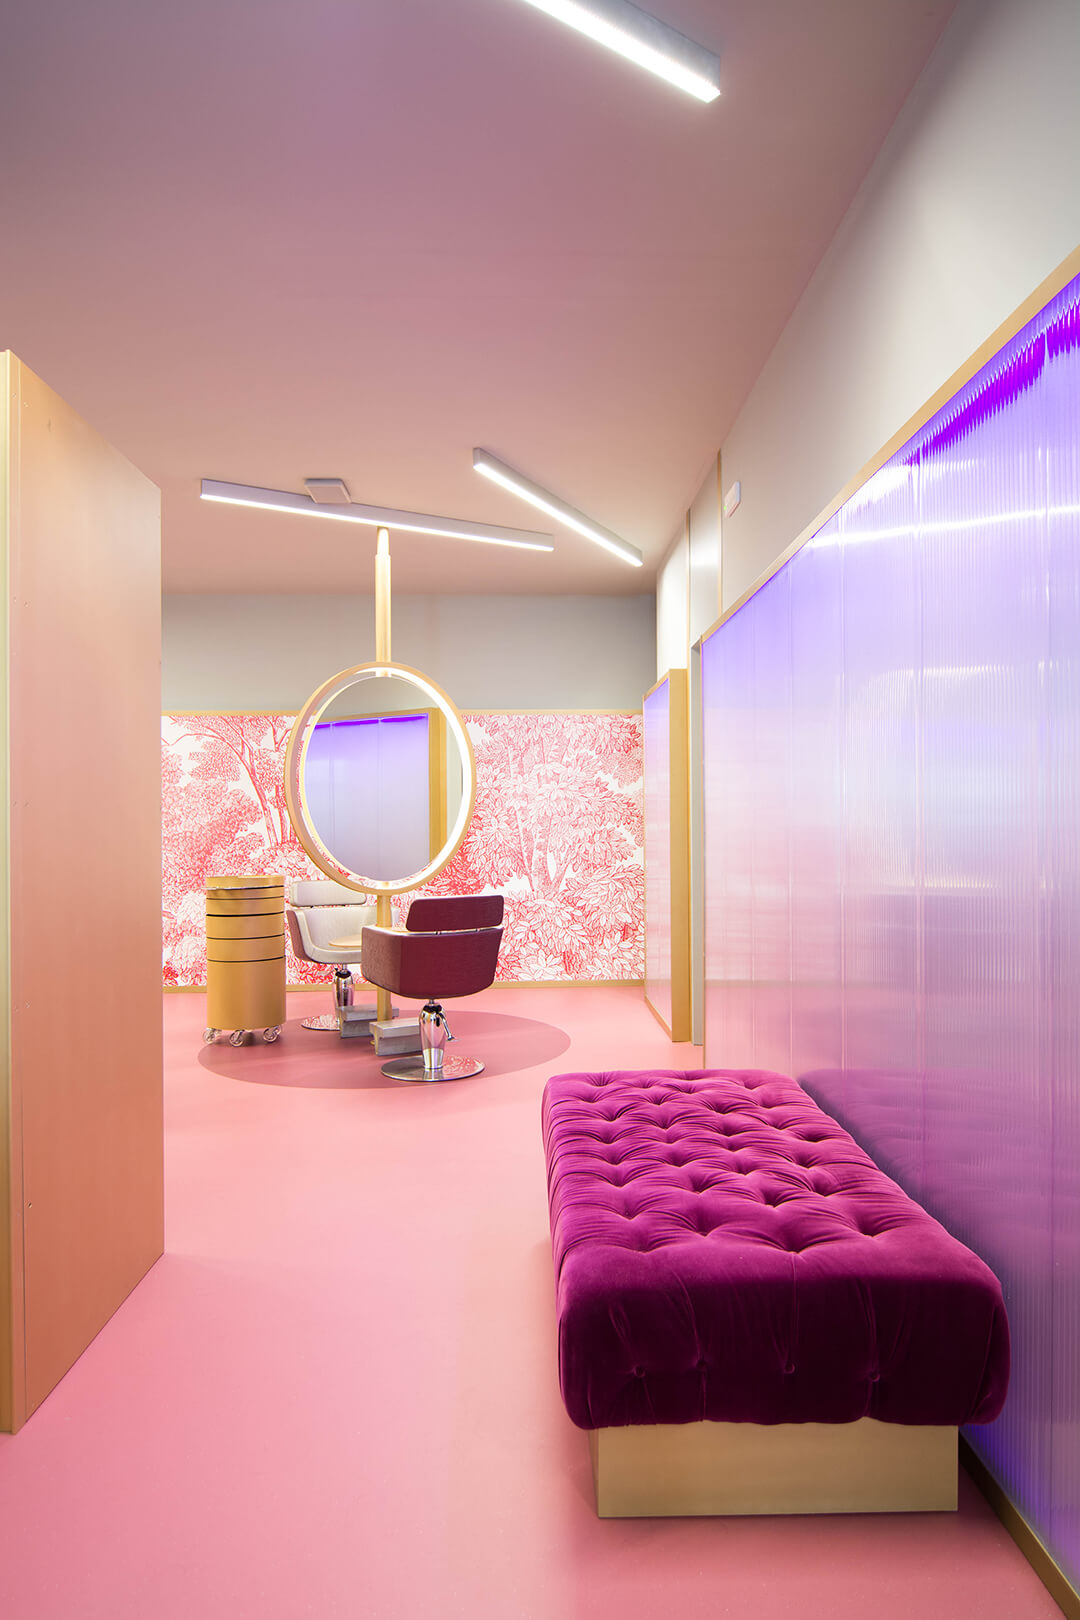 Frame The Hair Salon 2 0 Is Designed For An Experience